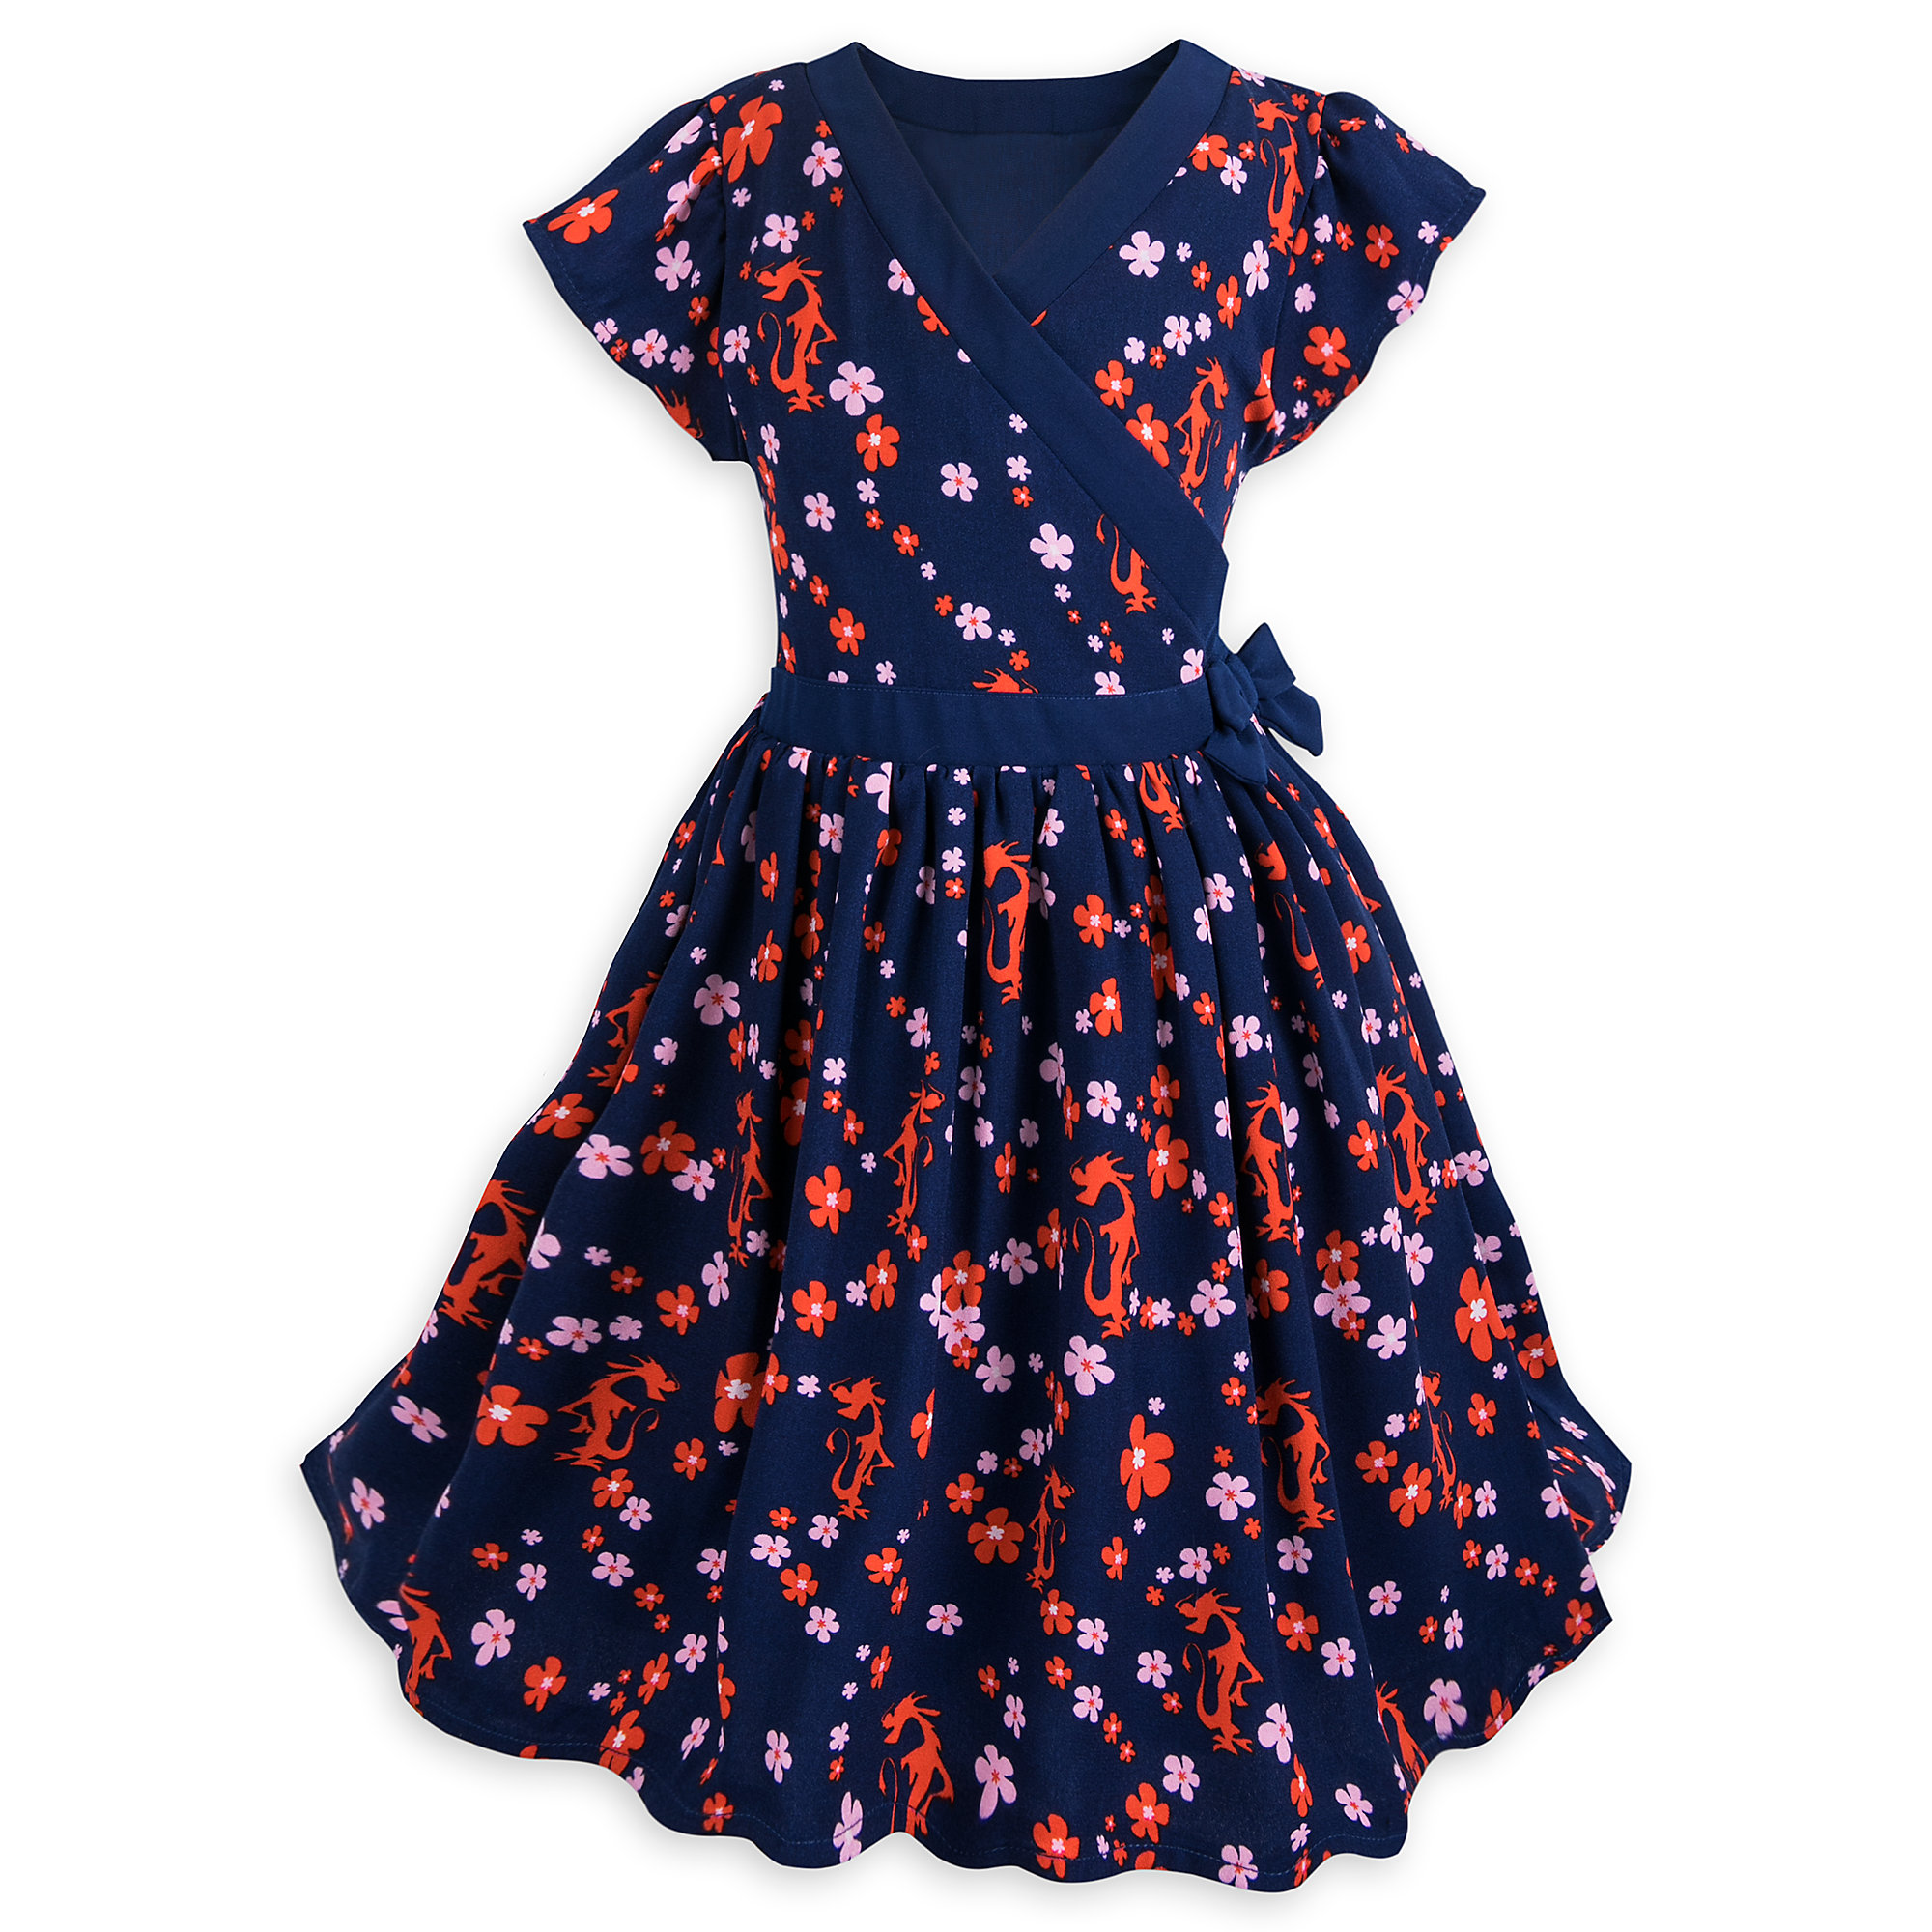 Mushu Dress for Girls - Mulan